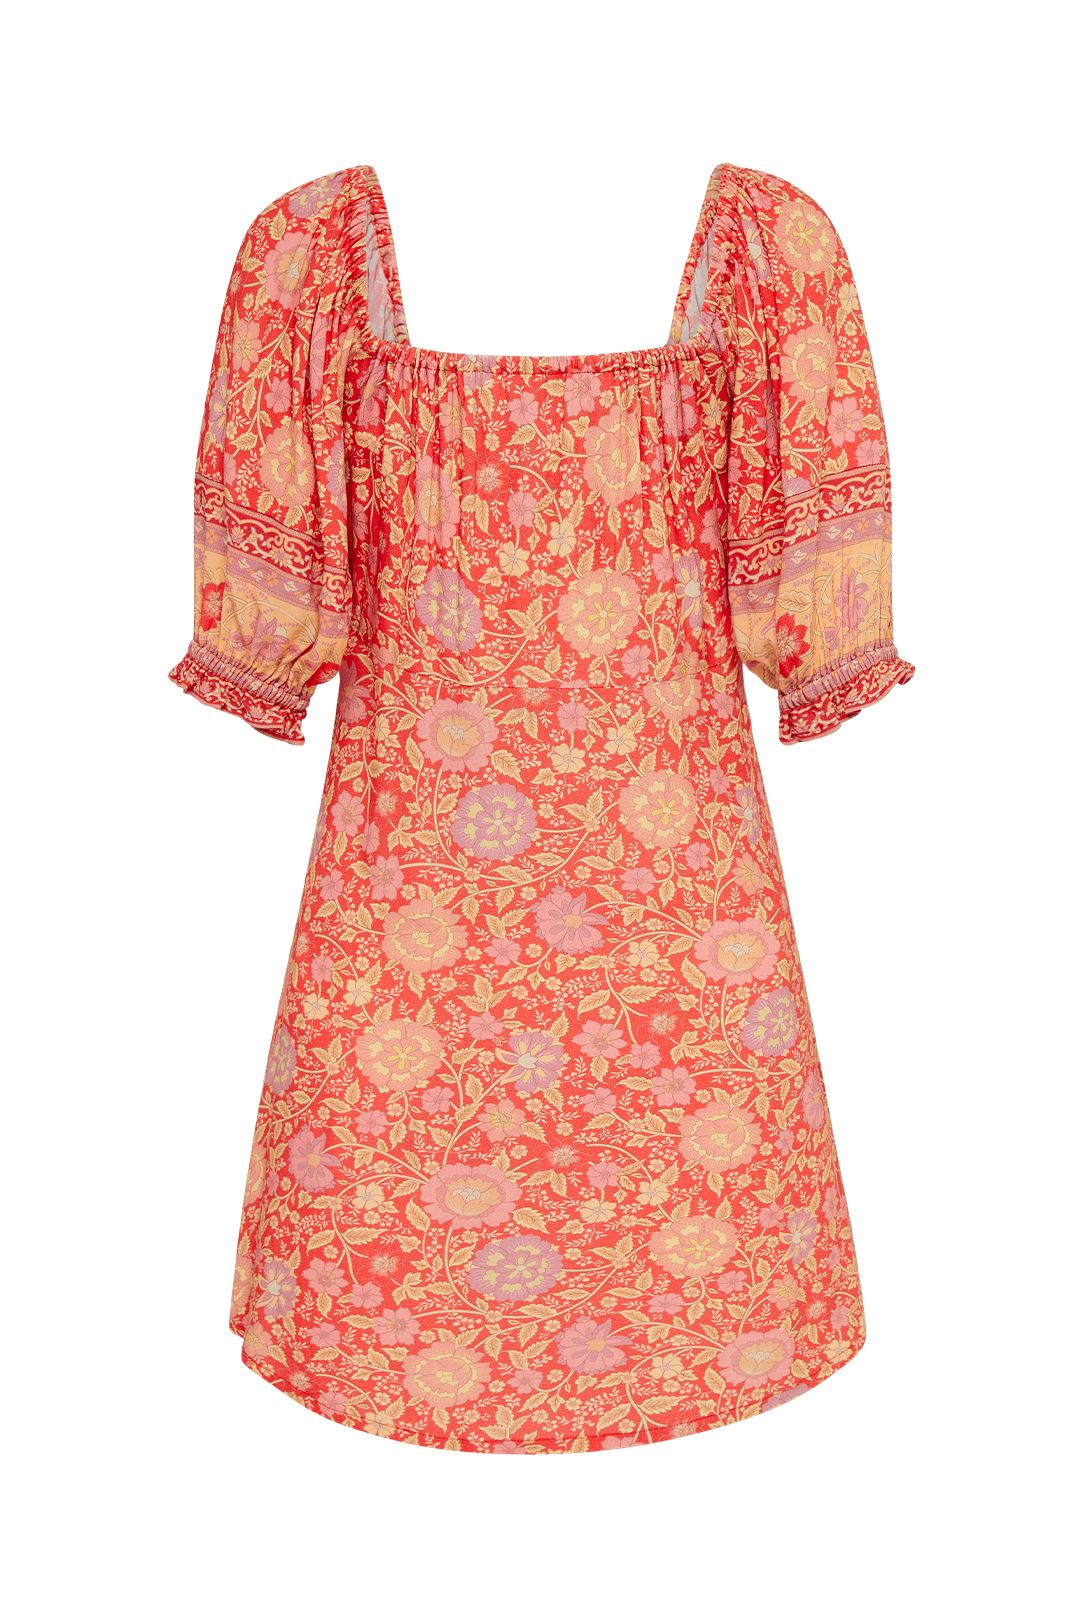 Spell Love Story Dress Red Coral Floral Blouson Sleeves